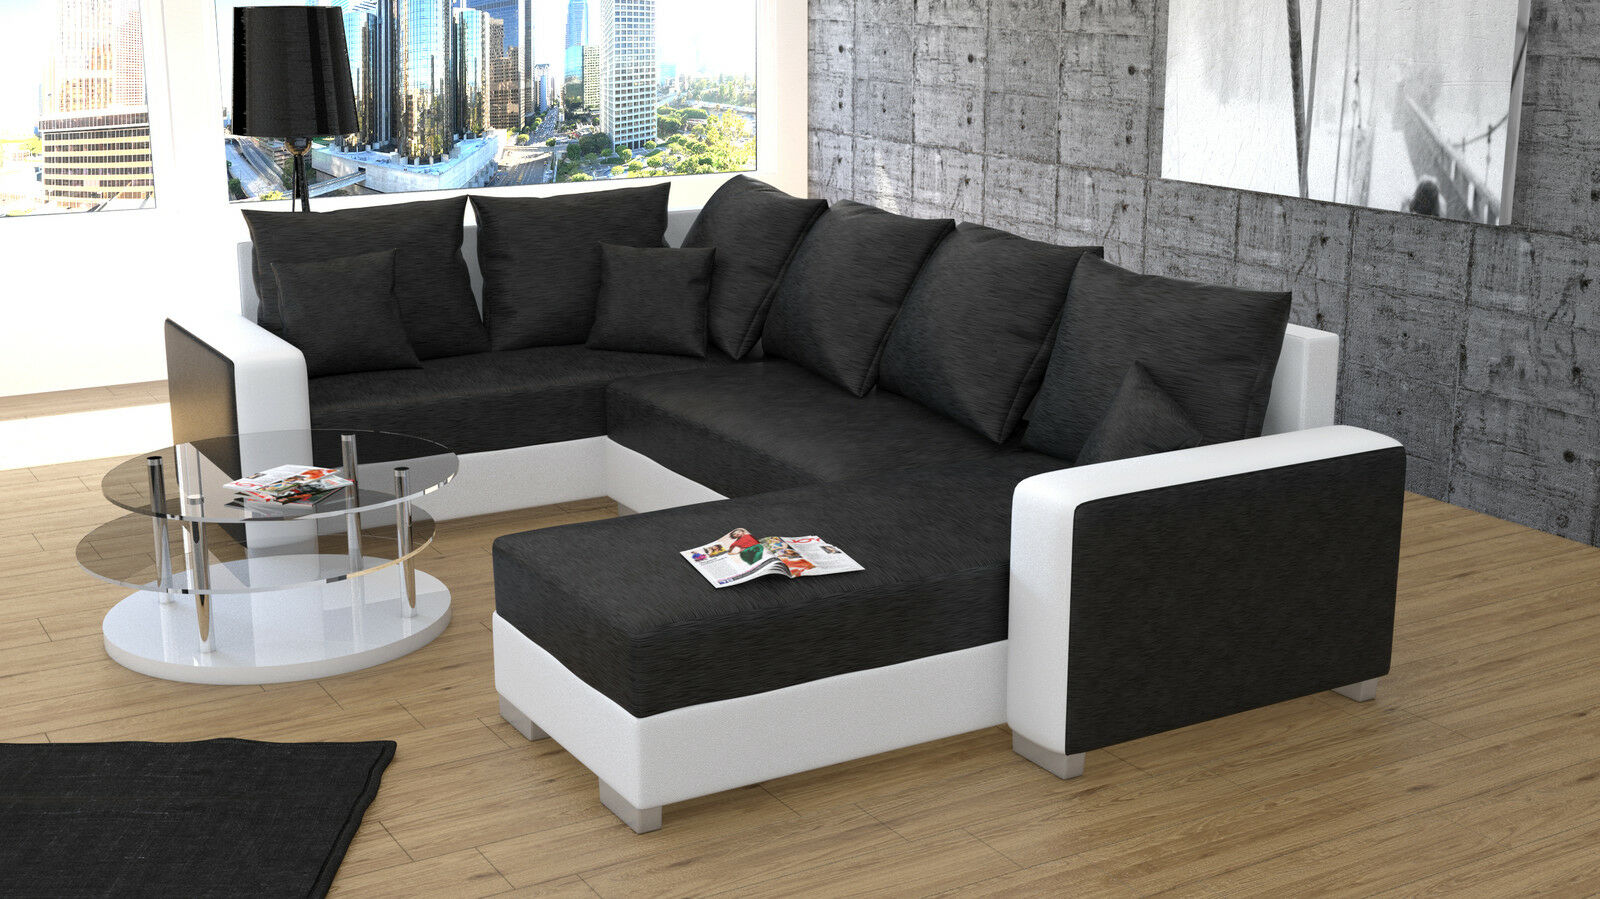 Couch garnitur ecksofa sofagarnitur sofa palio 1 u for Ecksofa garnitur